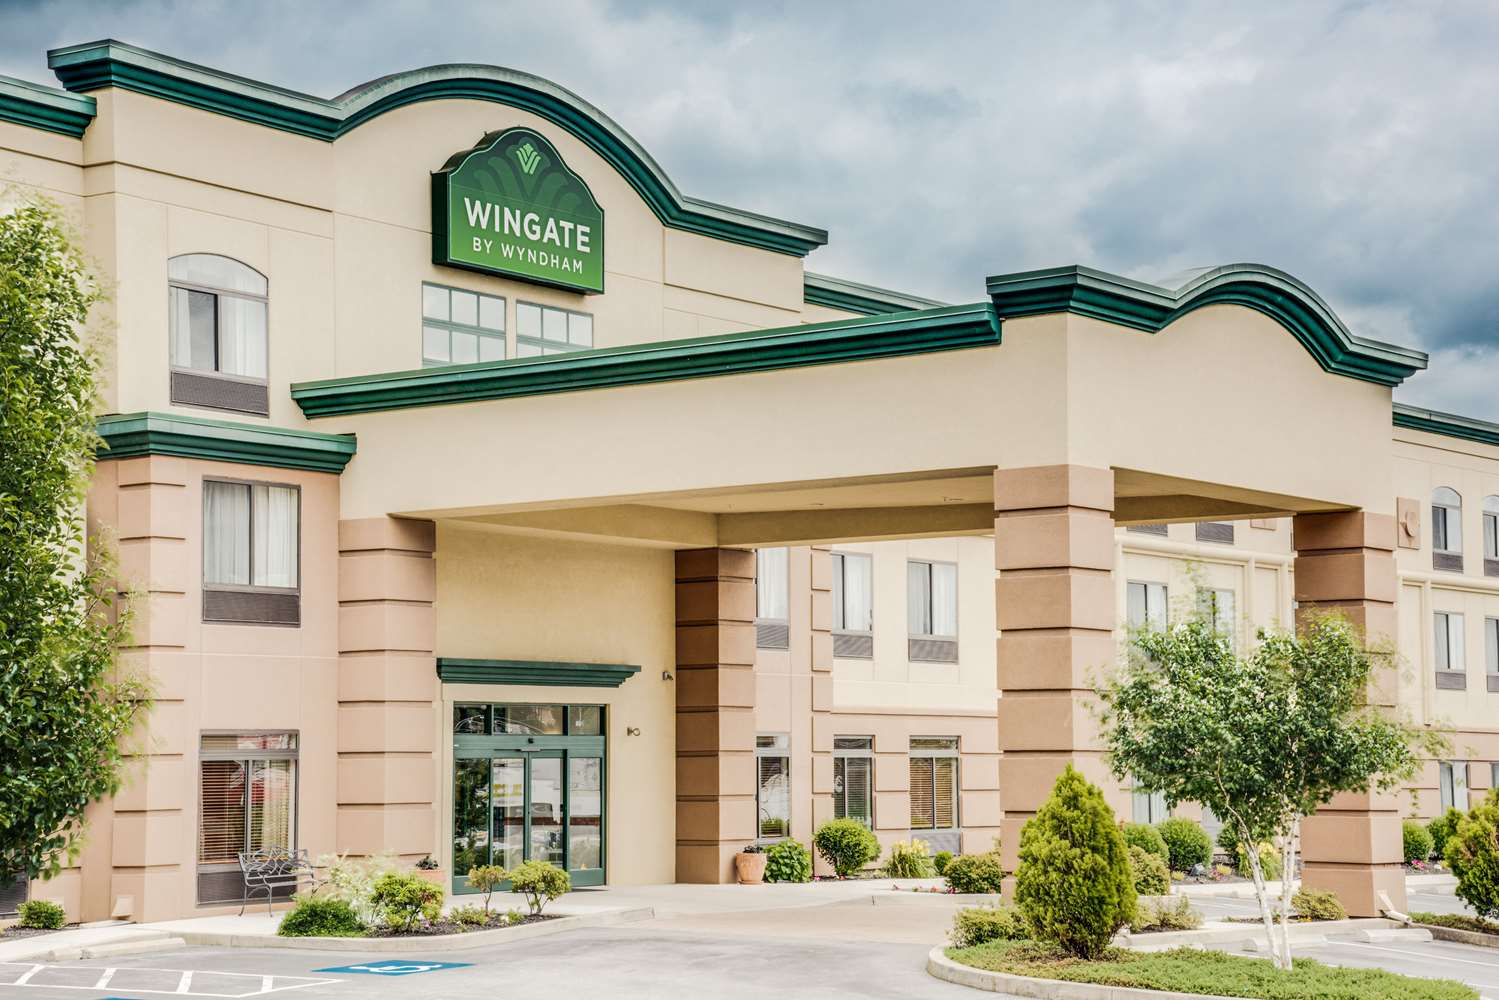 Exterior view - Wingate by Wyndham Hotel York